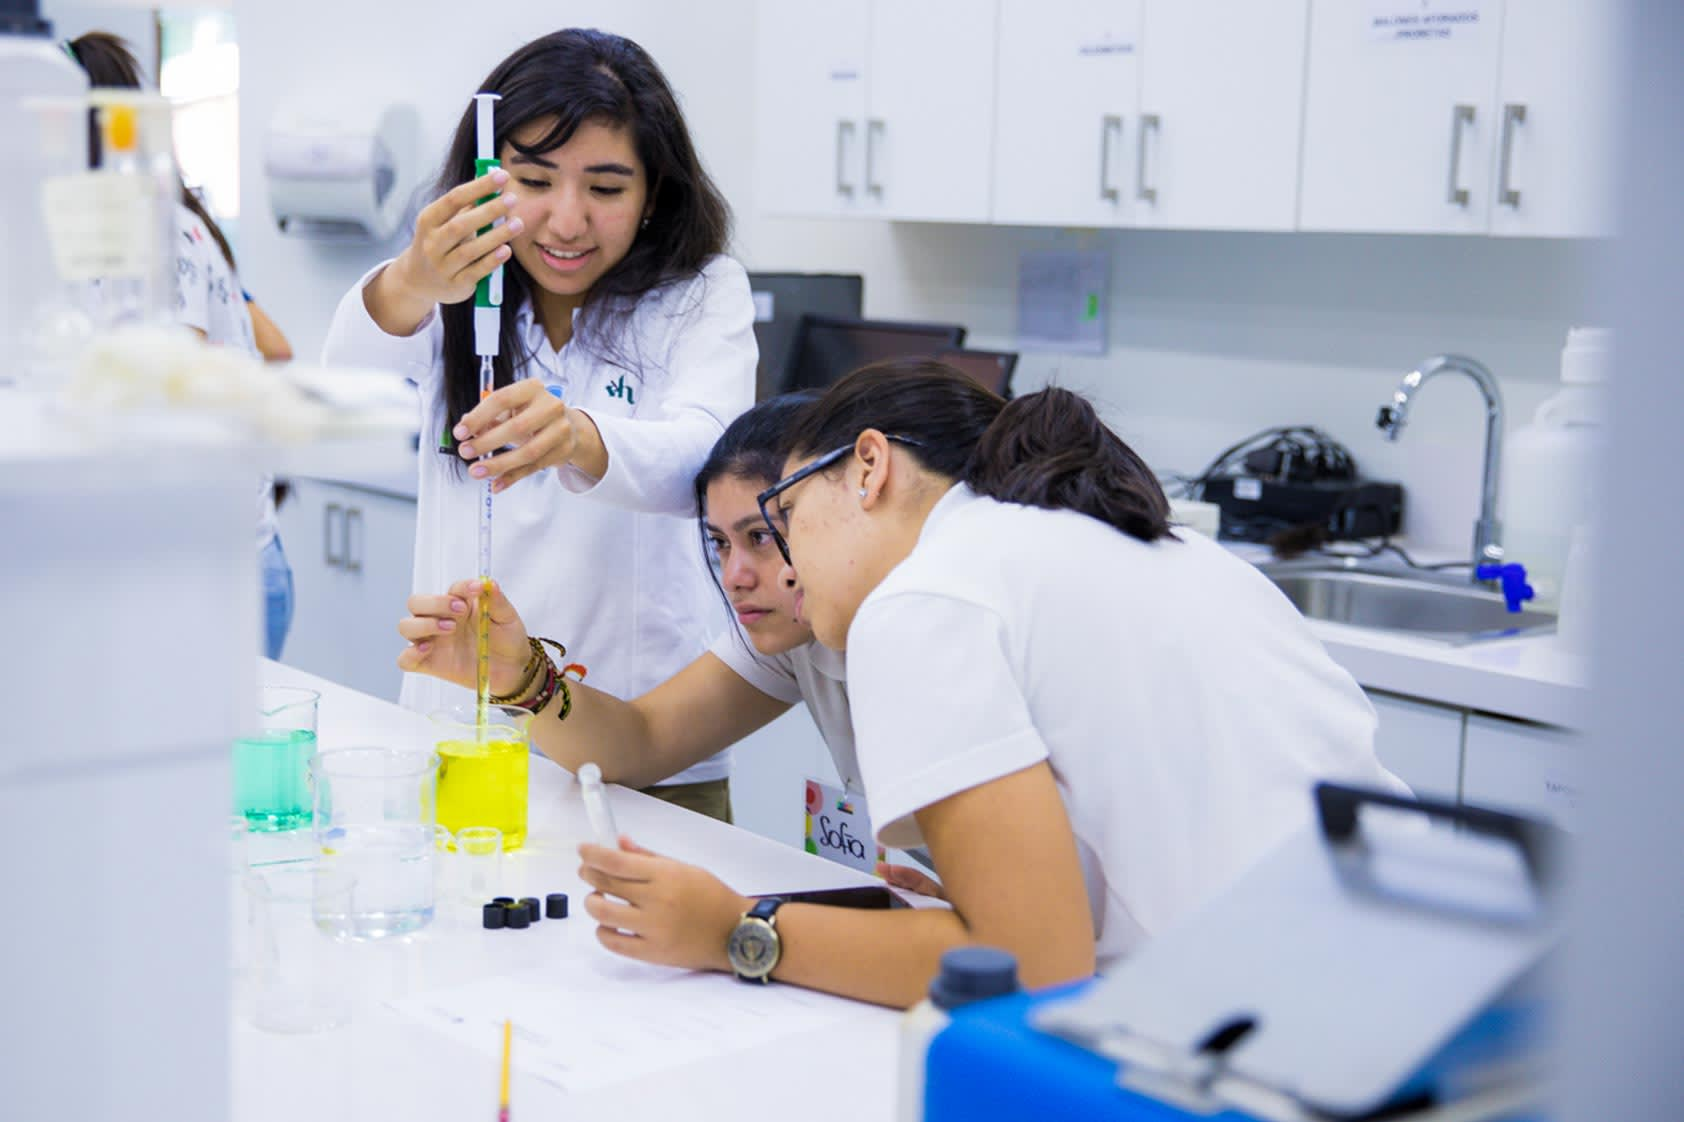 Girls STEAM Club se sumerge en la ingeniería de alimentos